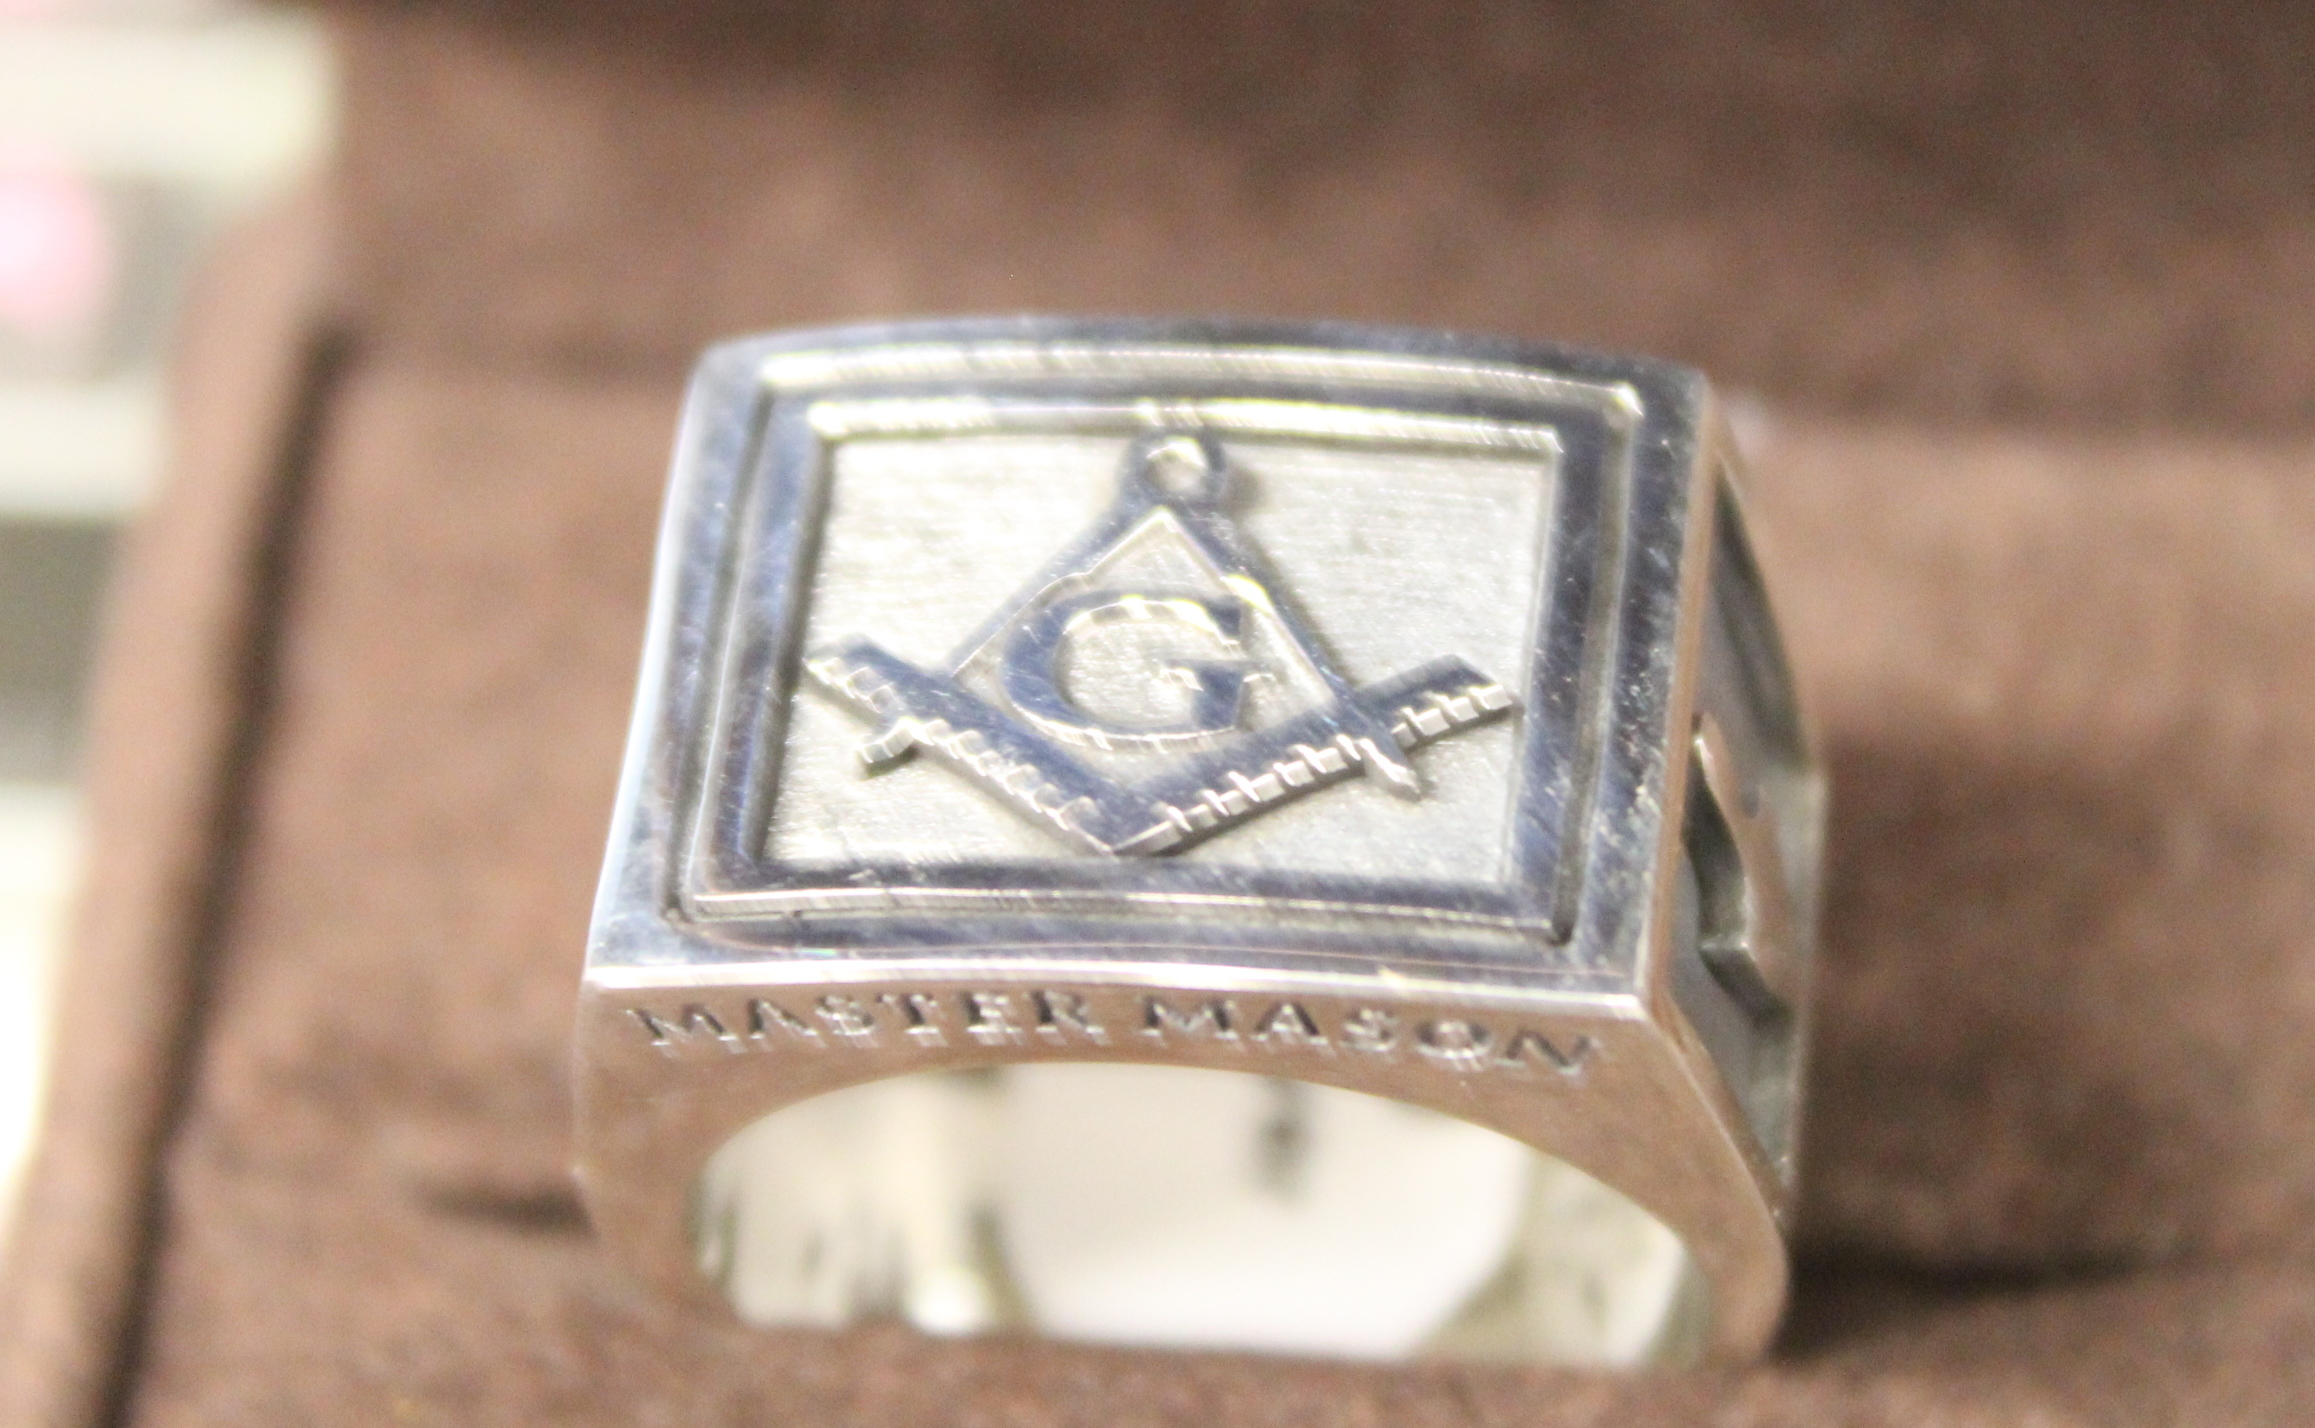 New Sterling Silver Master Mason Ring Size 10